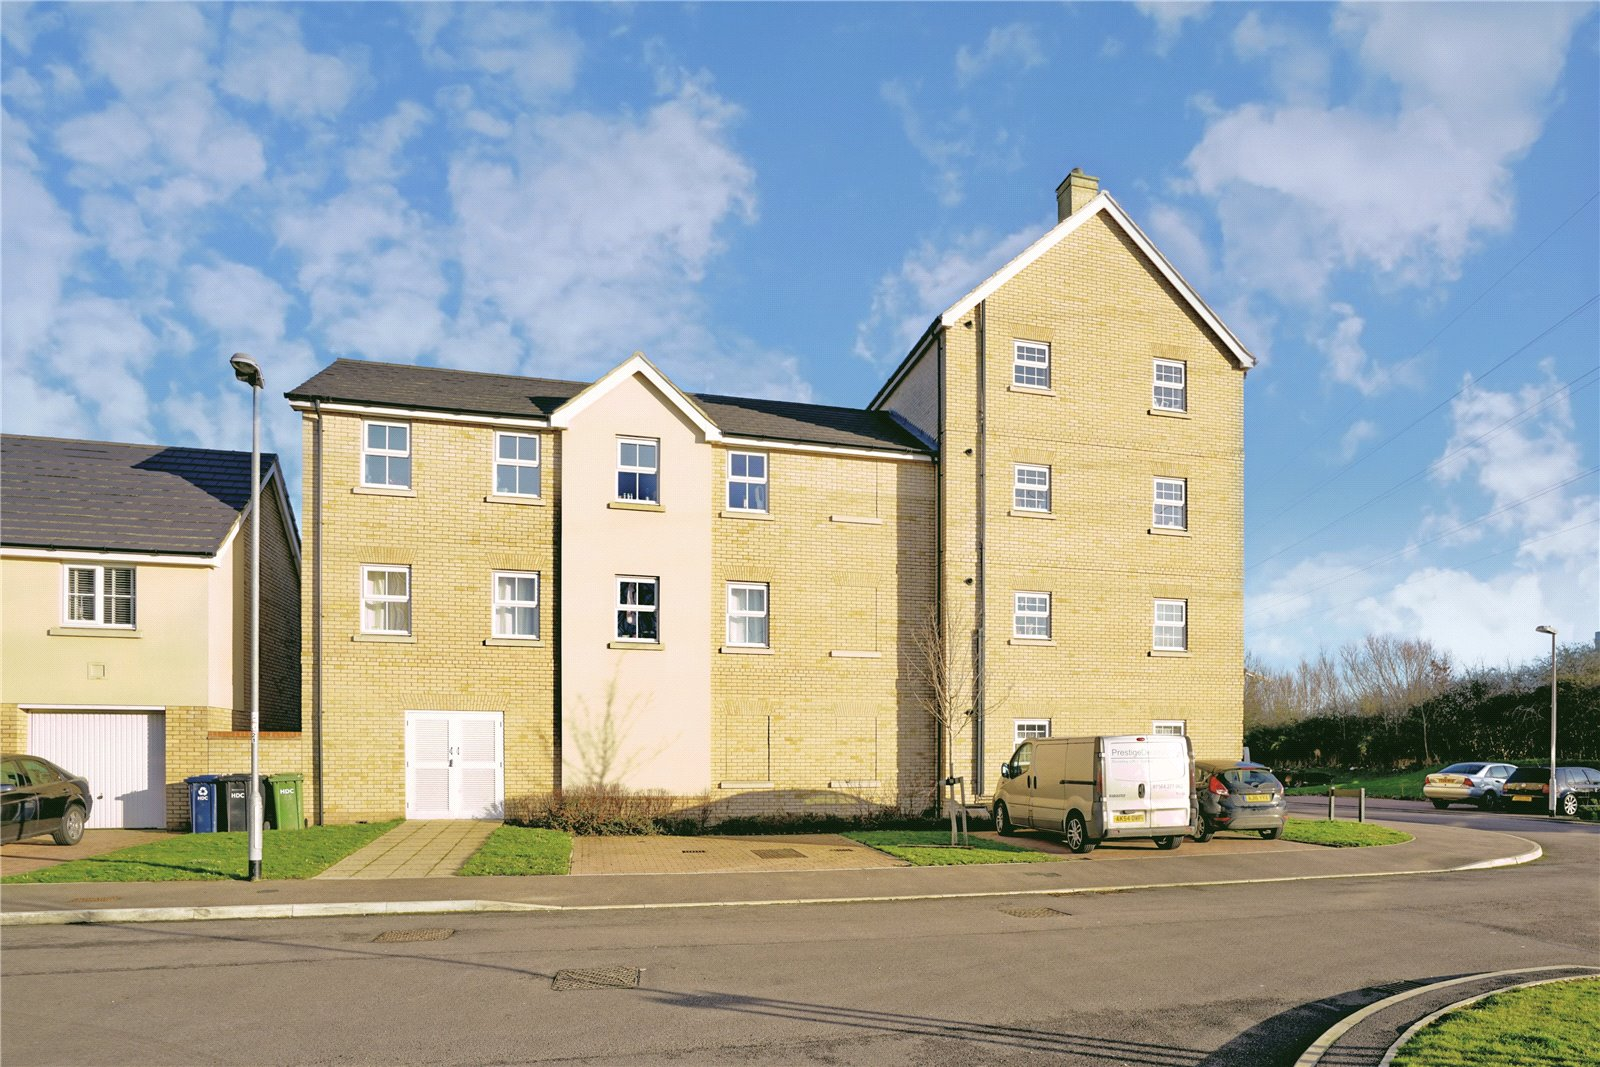 2 bed apartment for sale in Eynesbury, PE19 2LN, PE19